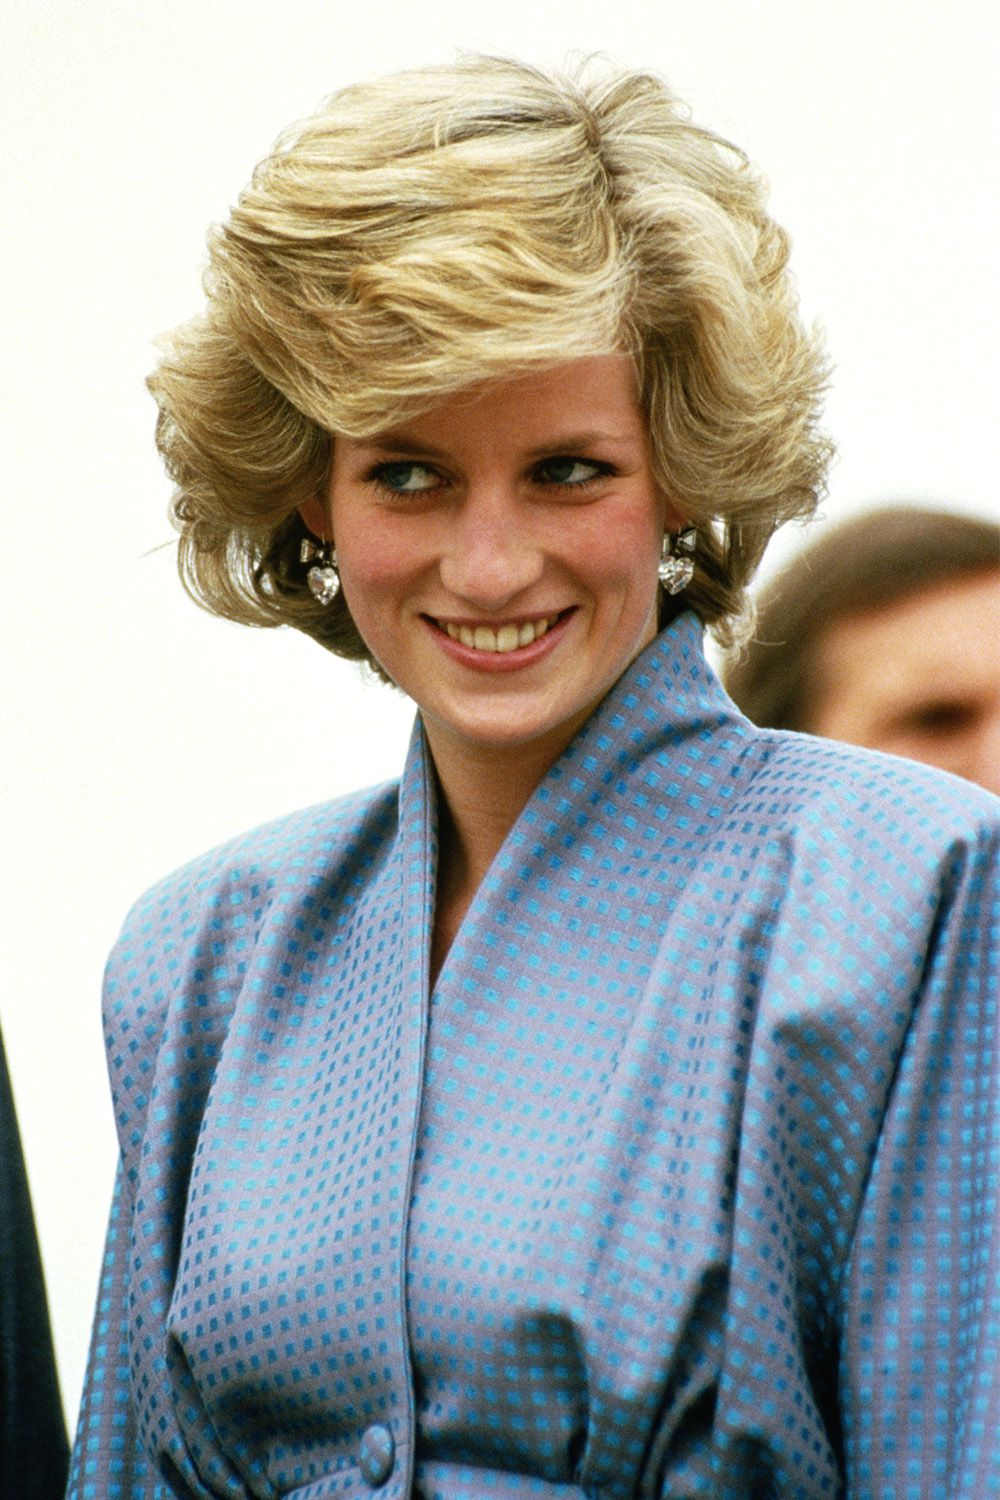 hbz-princess-diana-hair-1985-gettyimages-73802571-1502313843.jpg